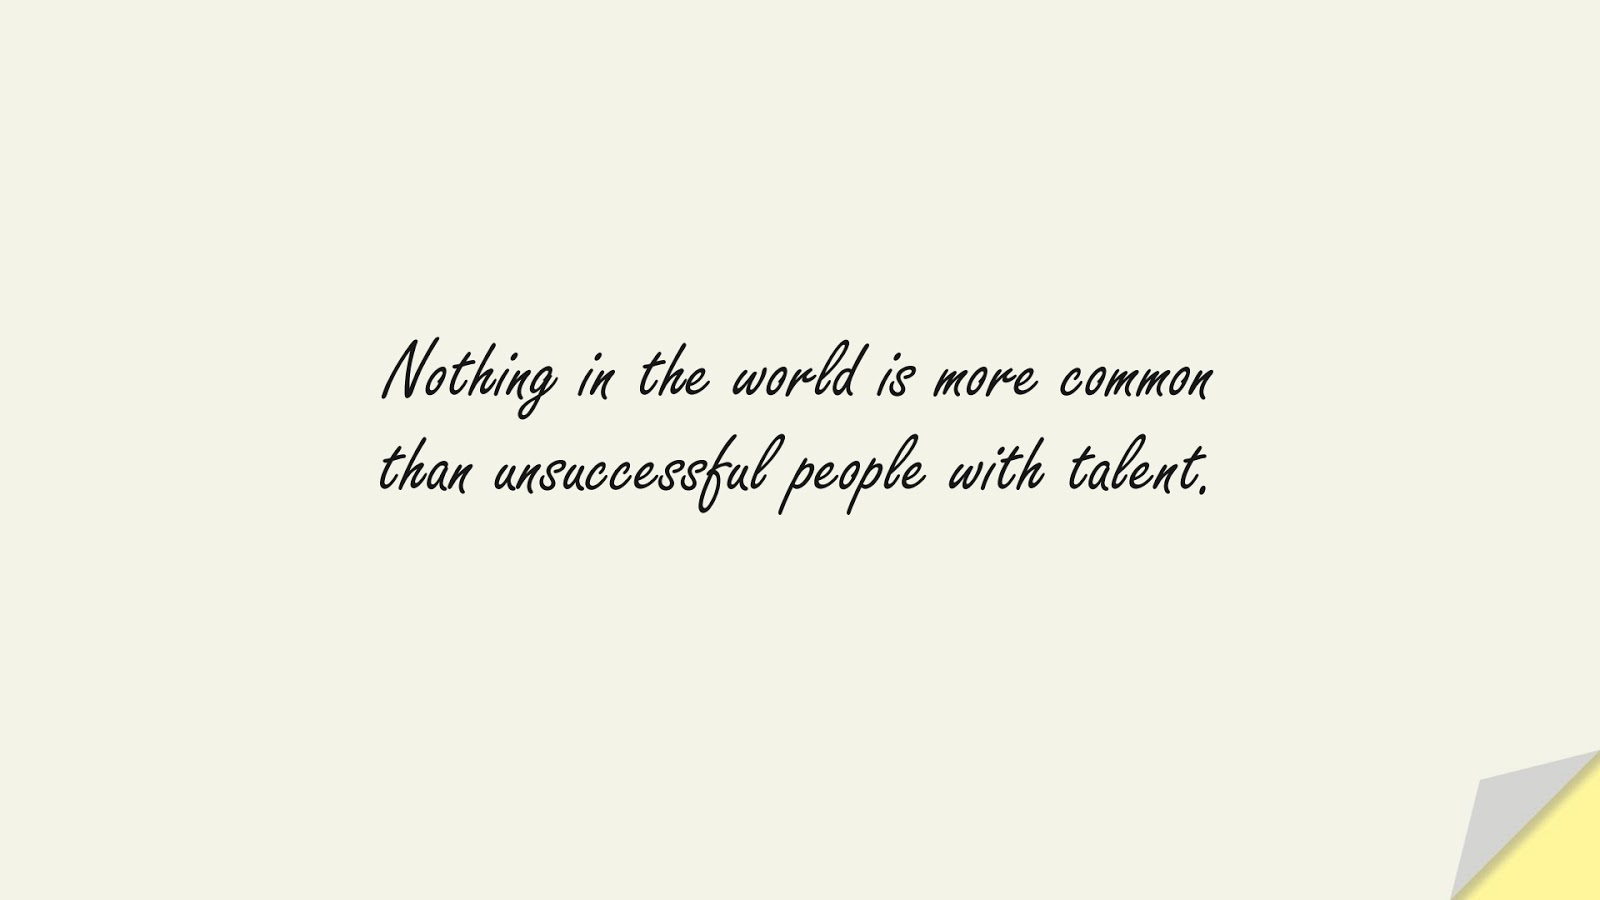 Nothing in the world is more common than unsuccessful people with talent.FALSE